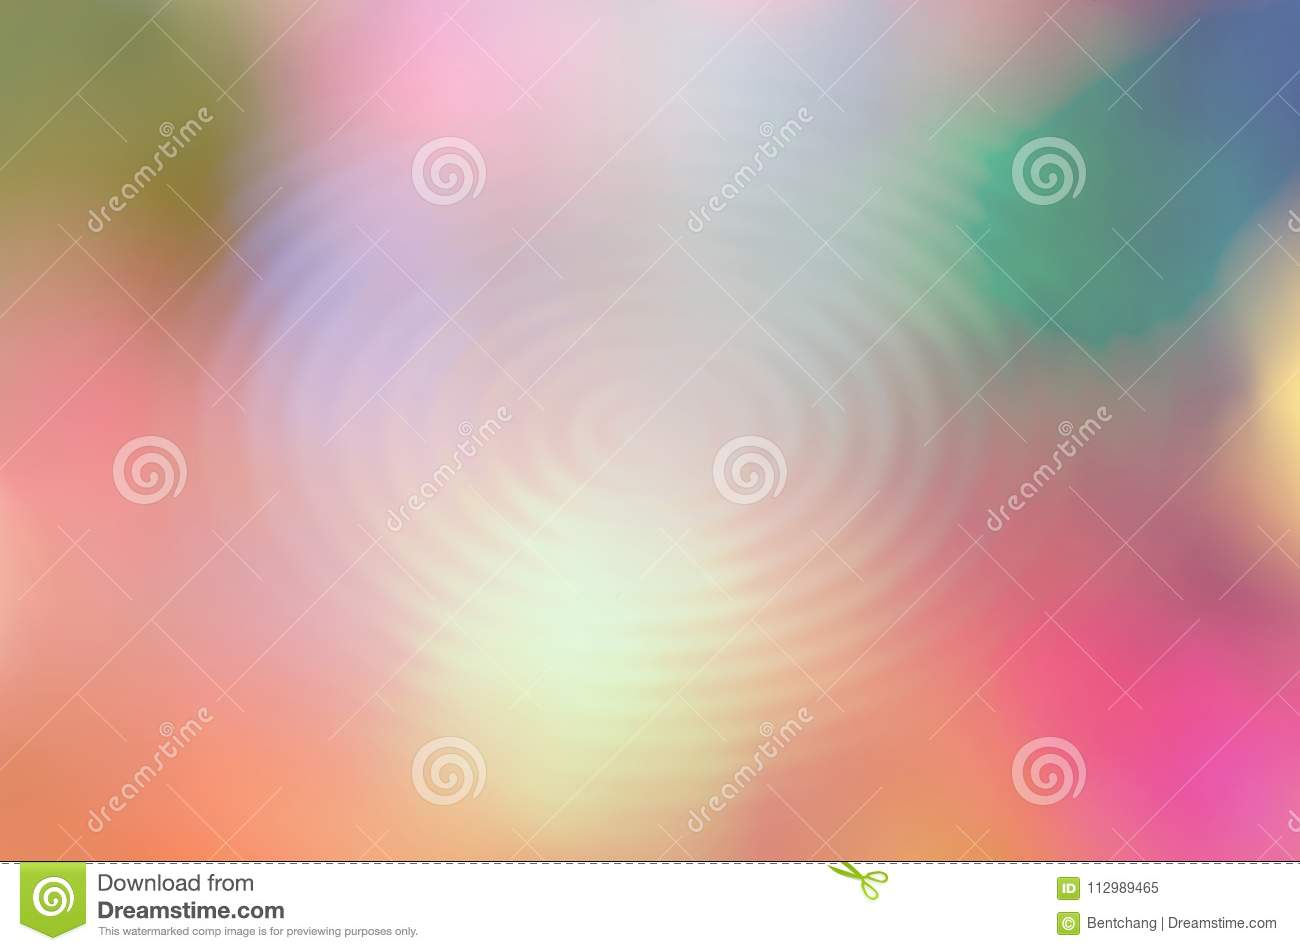 Abstract motion illustrations background. Blur, bubble, orange, dream & close-up.